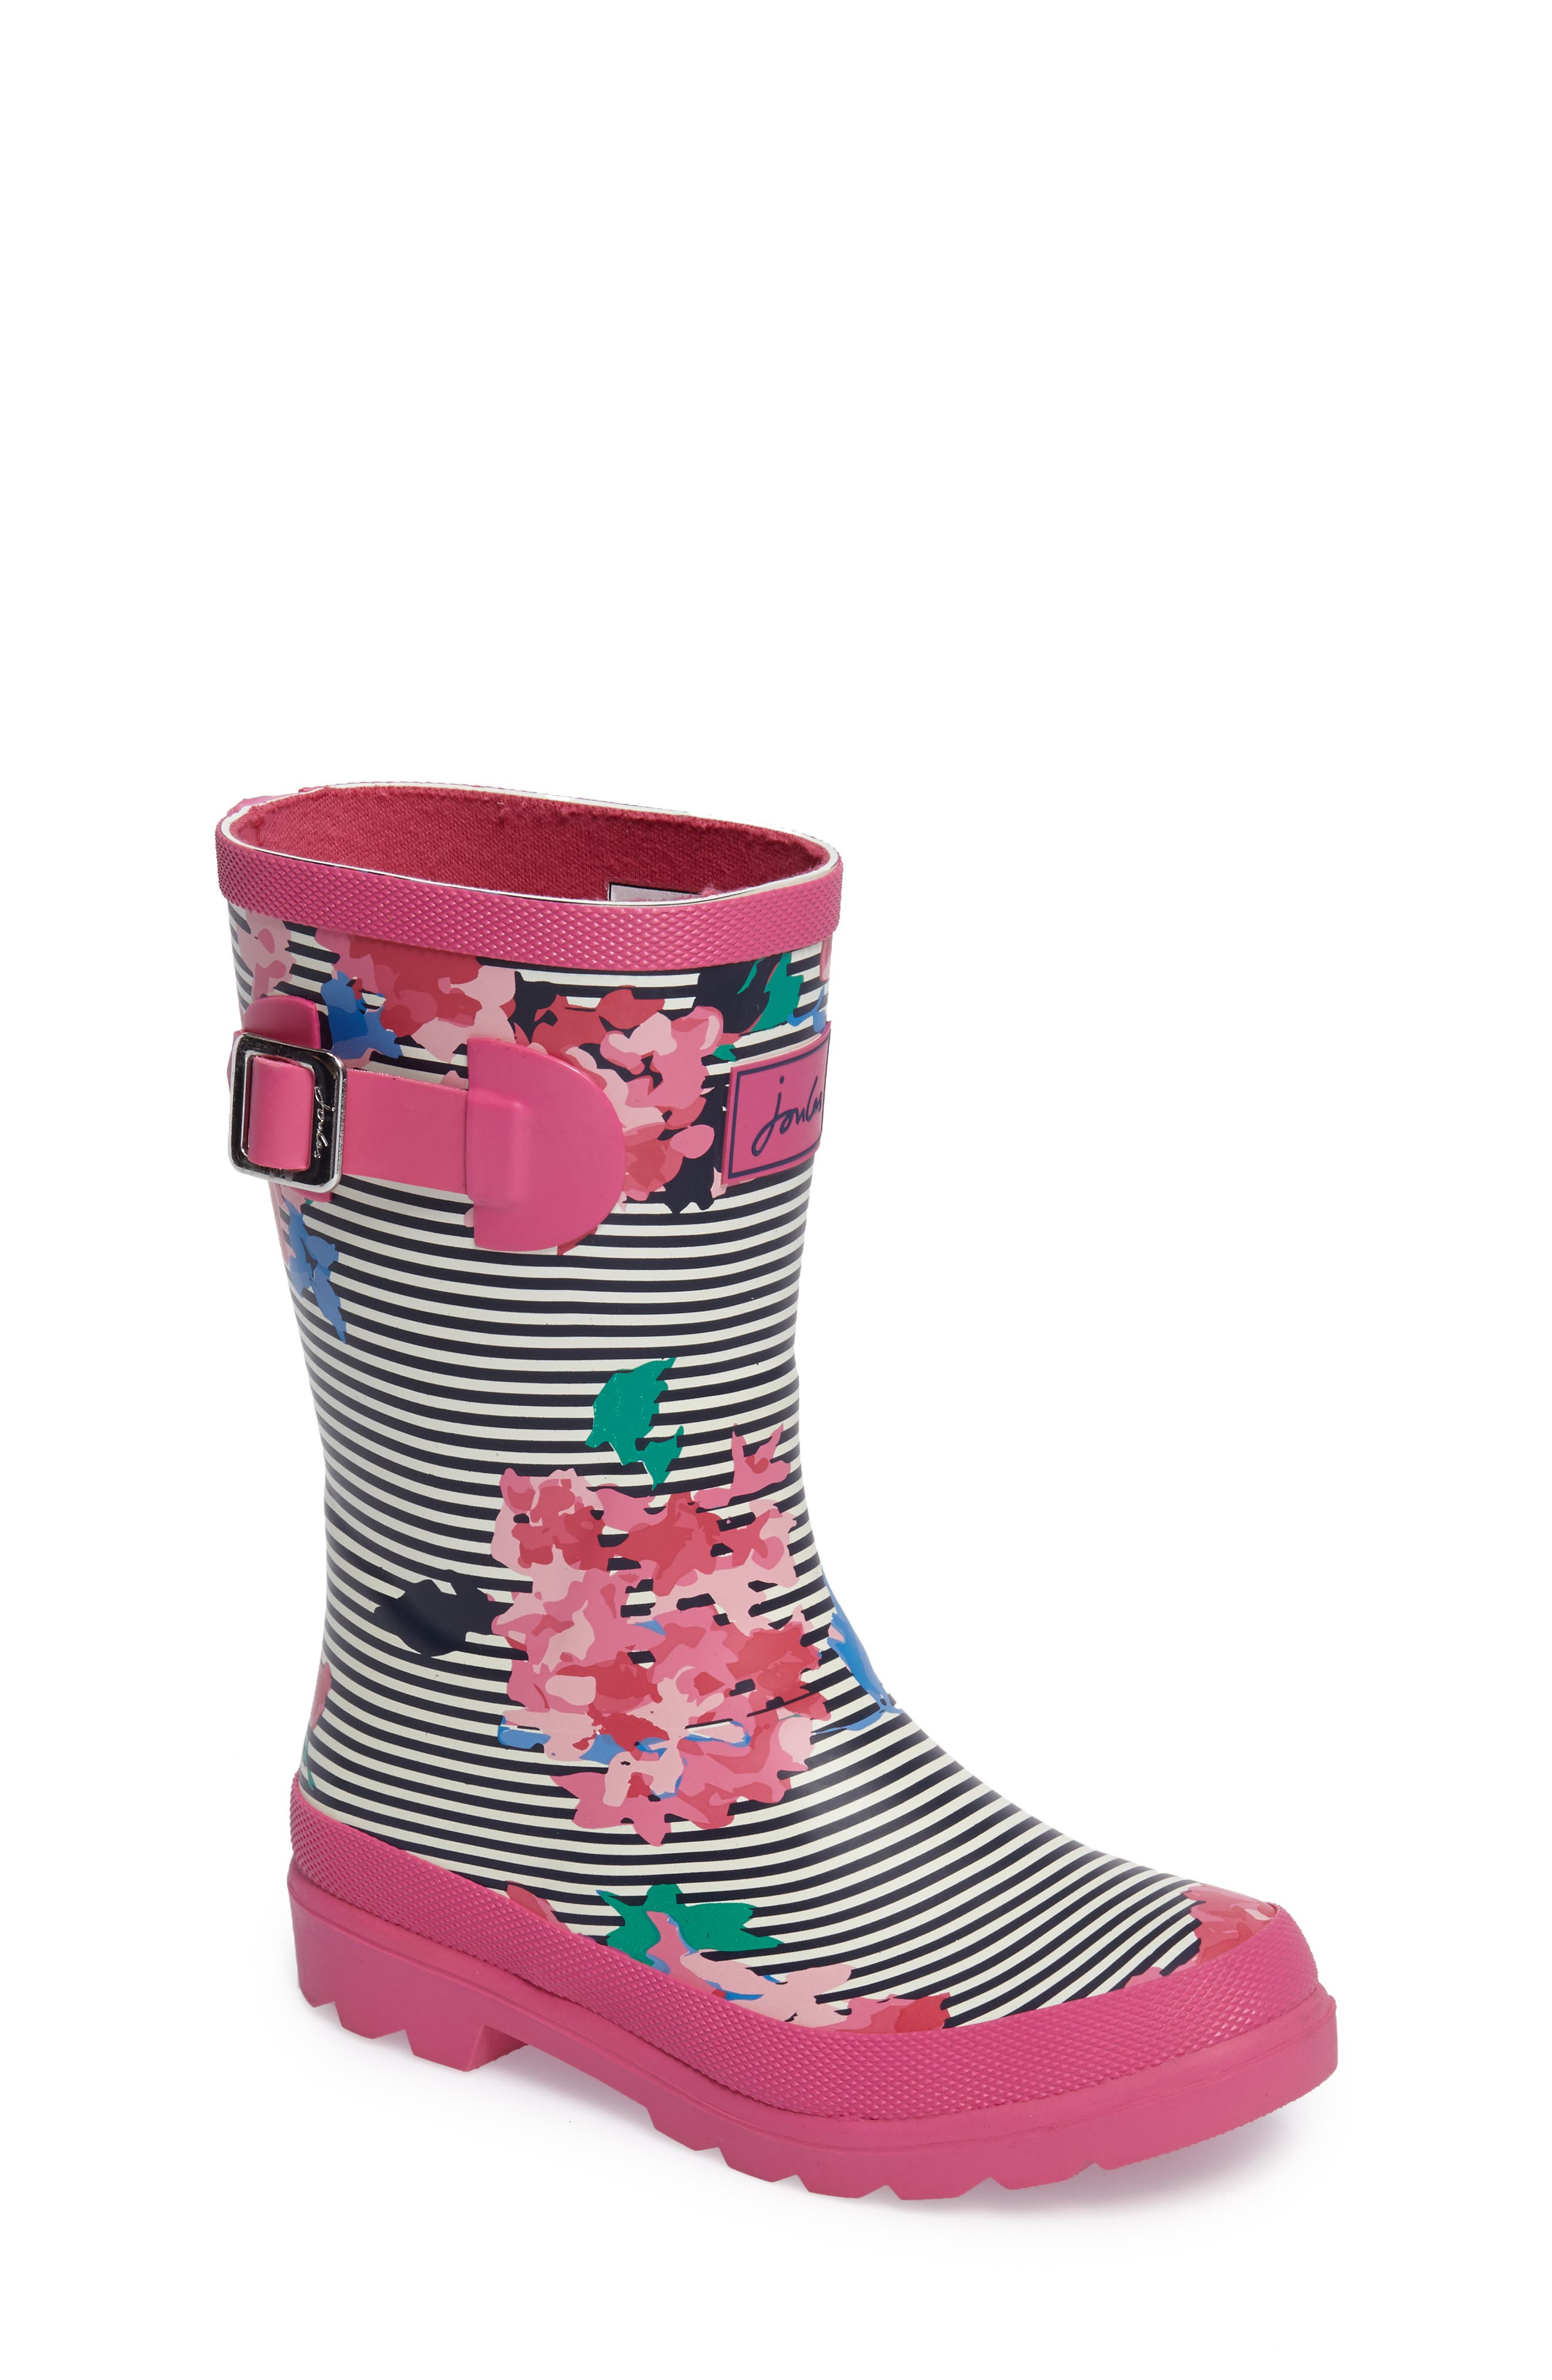 Joules Welly Printed Waterproof Rain Boot (Toddler, Little Kid & Big Kid)